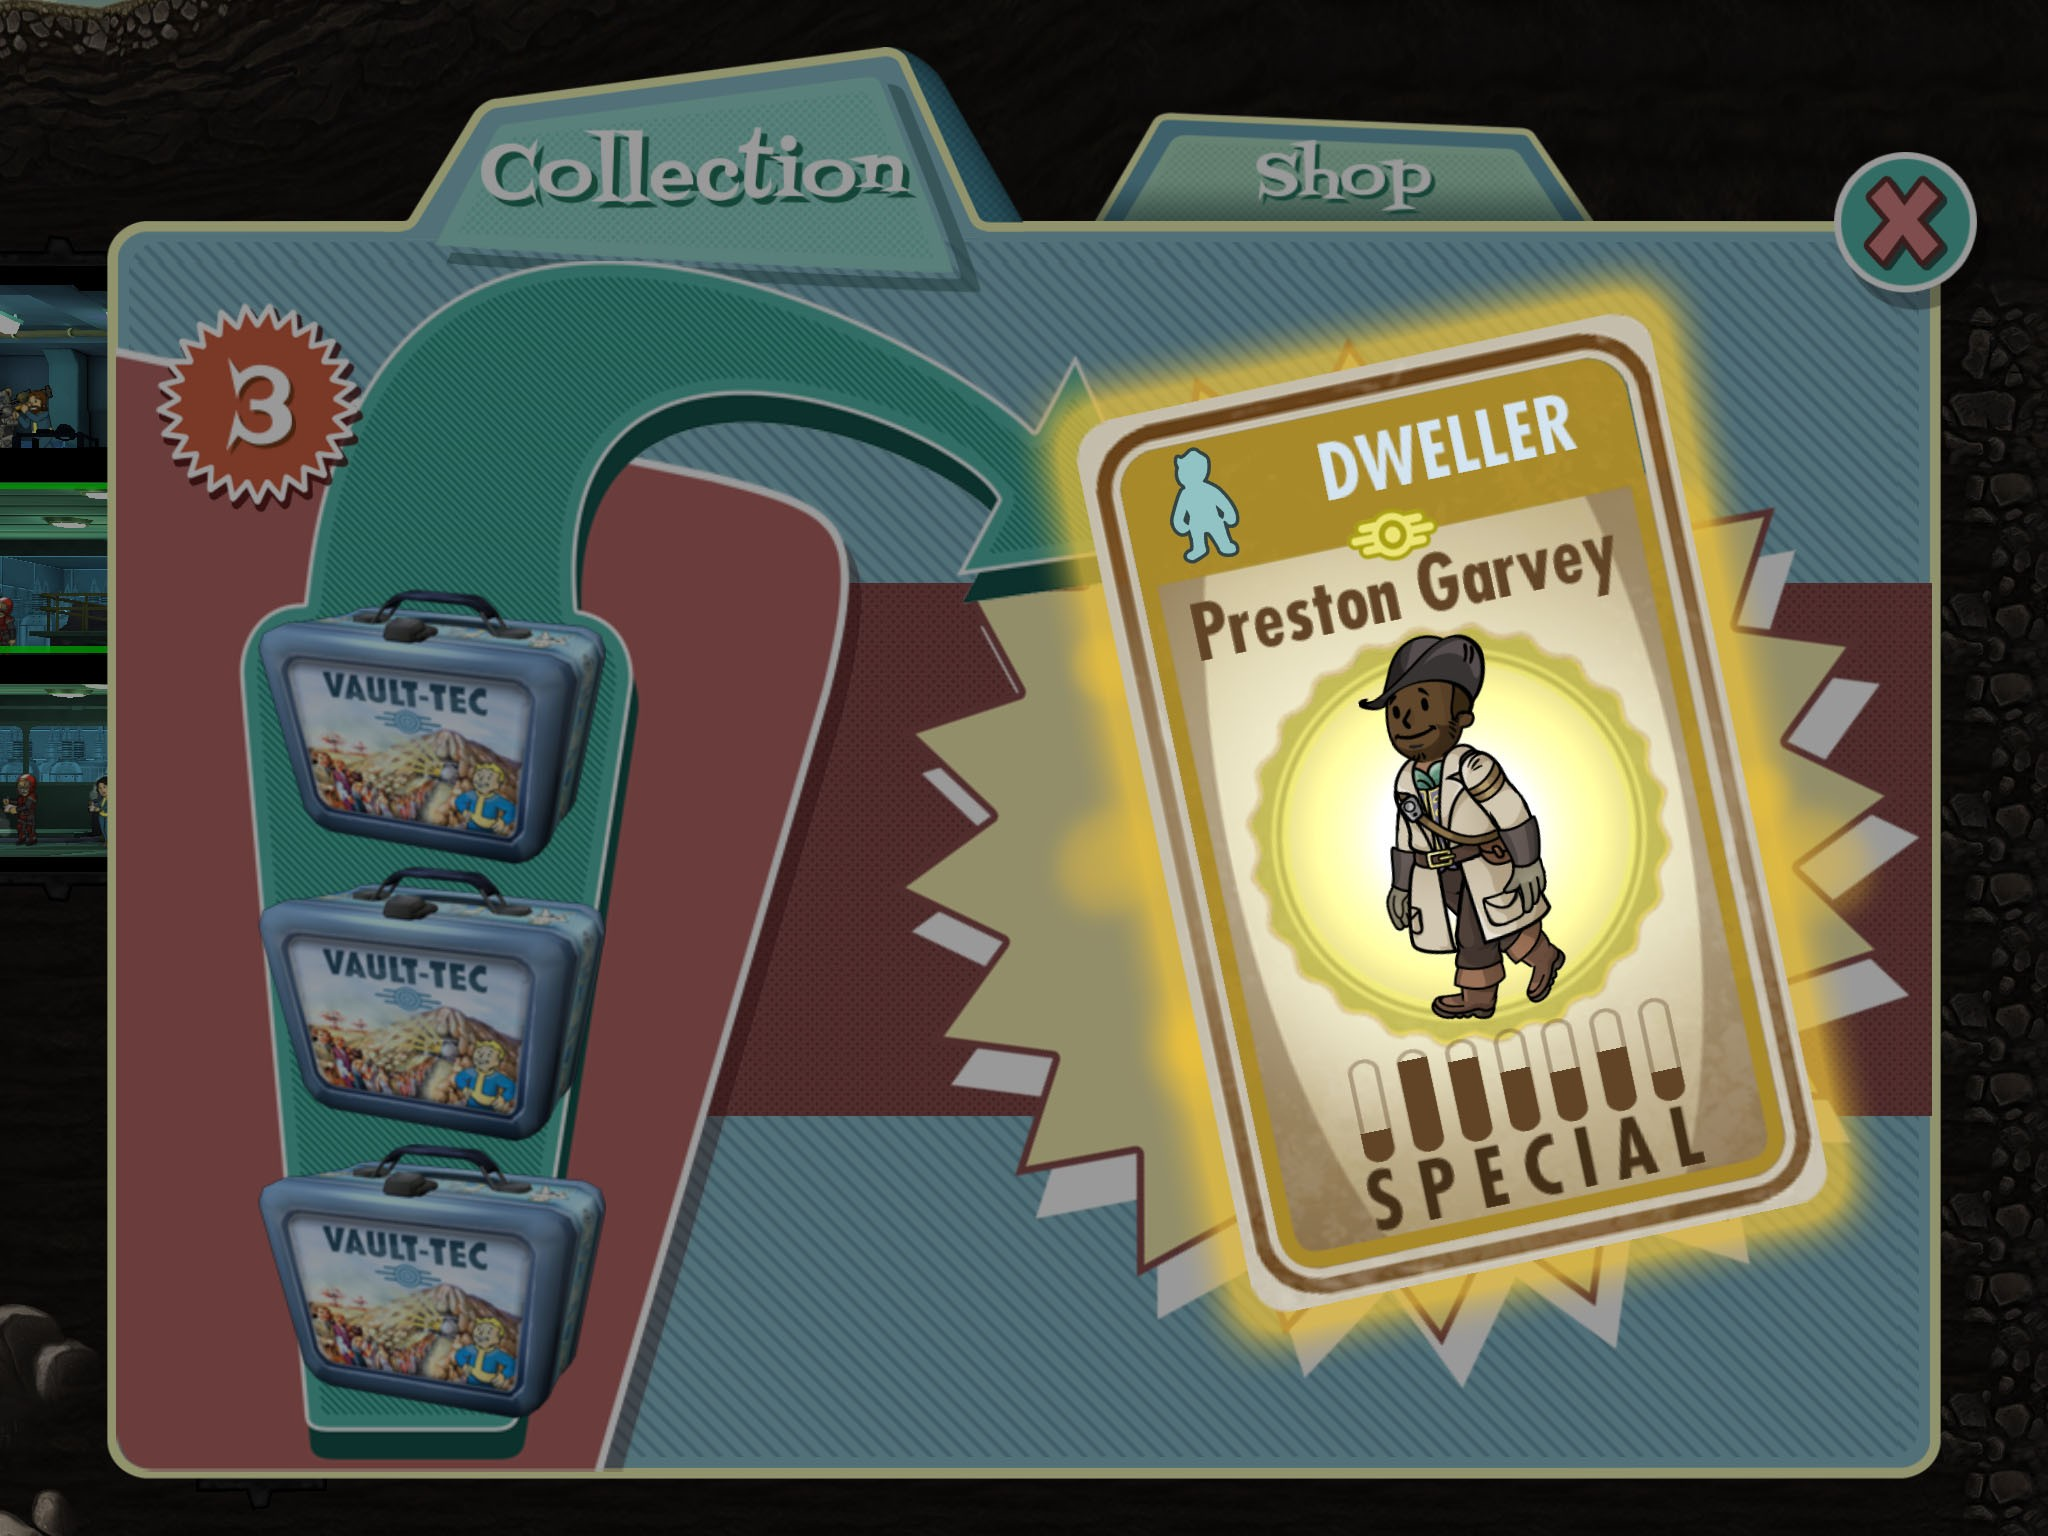 fallout shelter update brings first unlockable fallout 4 character